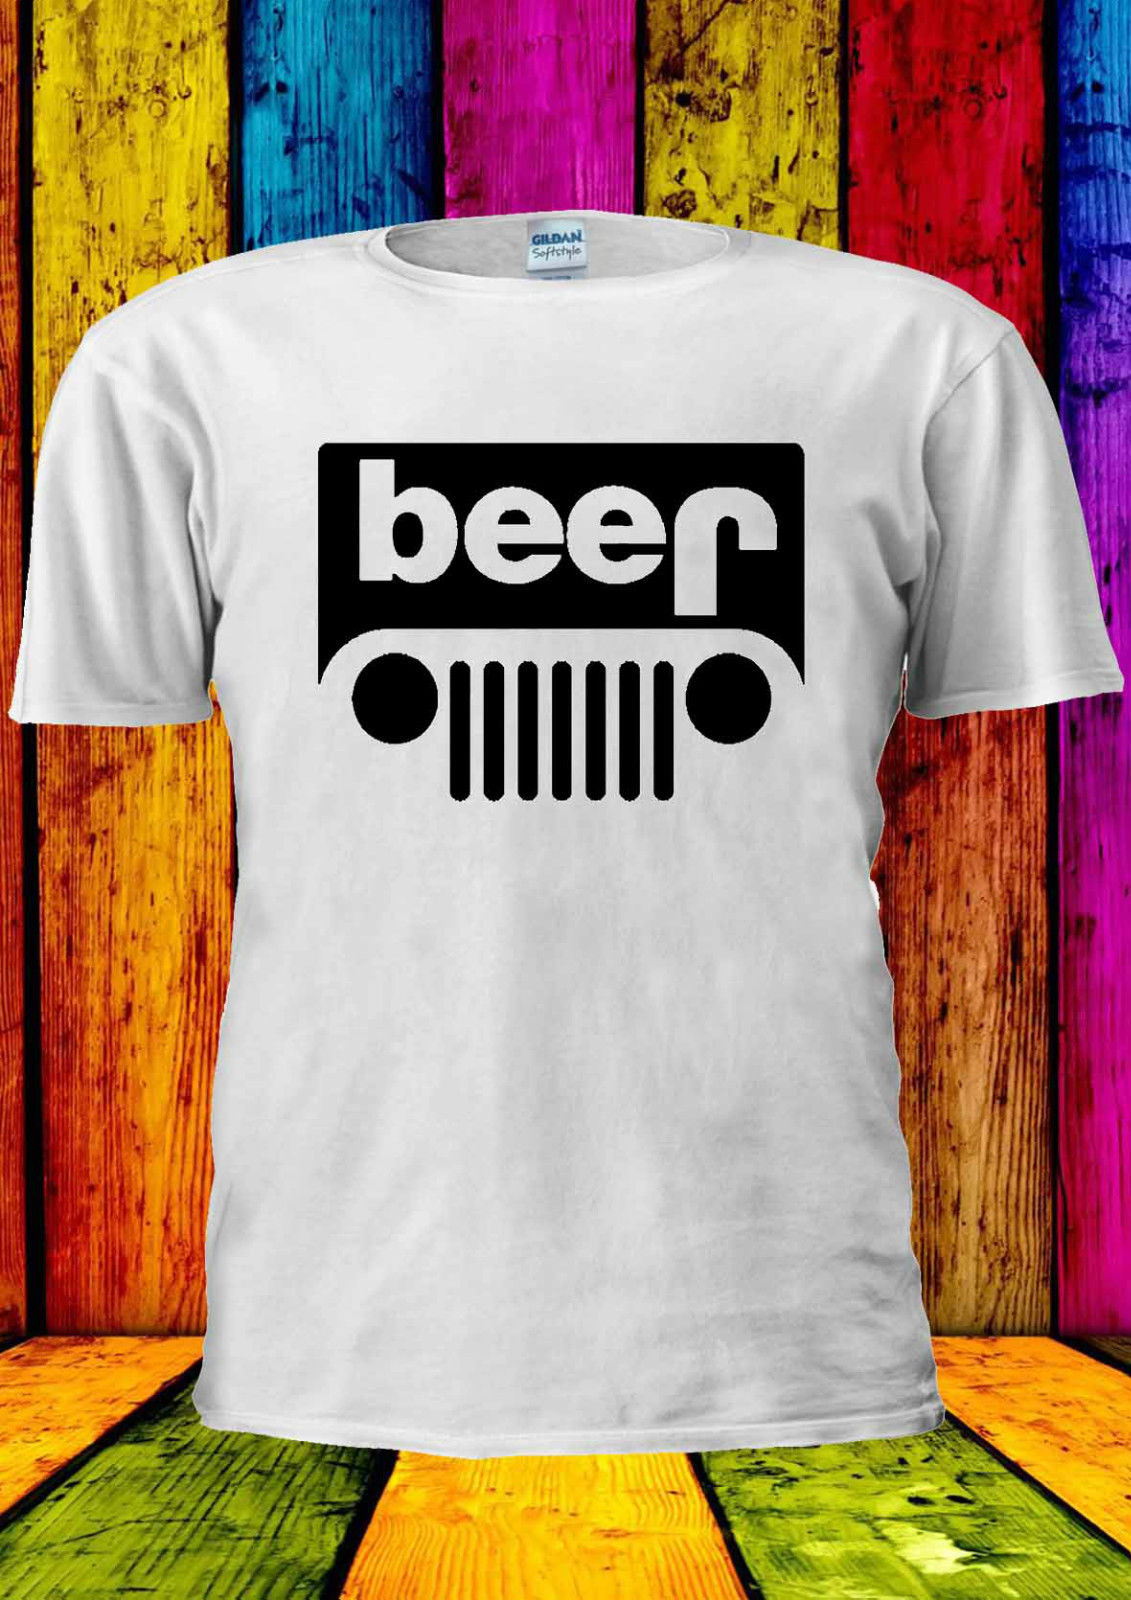 New beer tank top men women couple casual loose vest sleeveless shirt US size